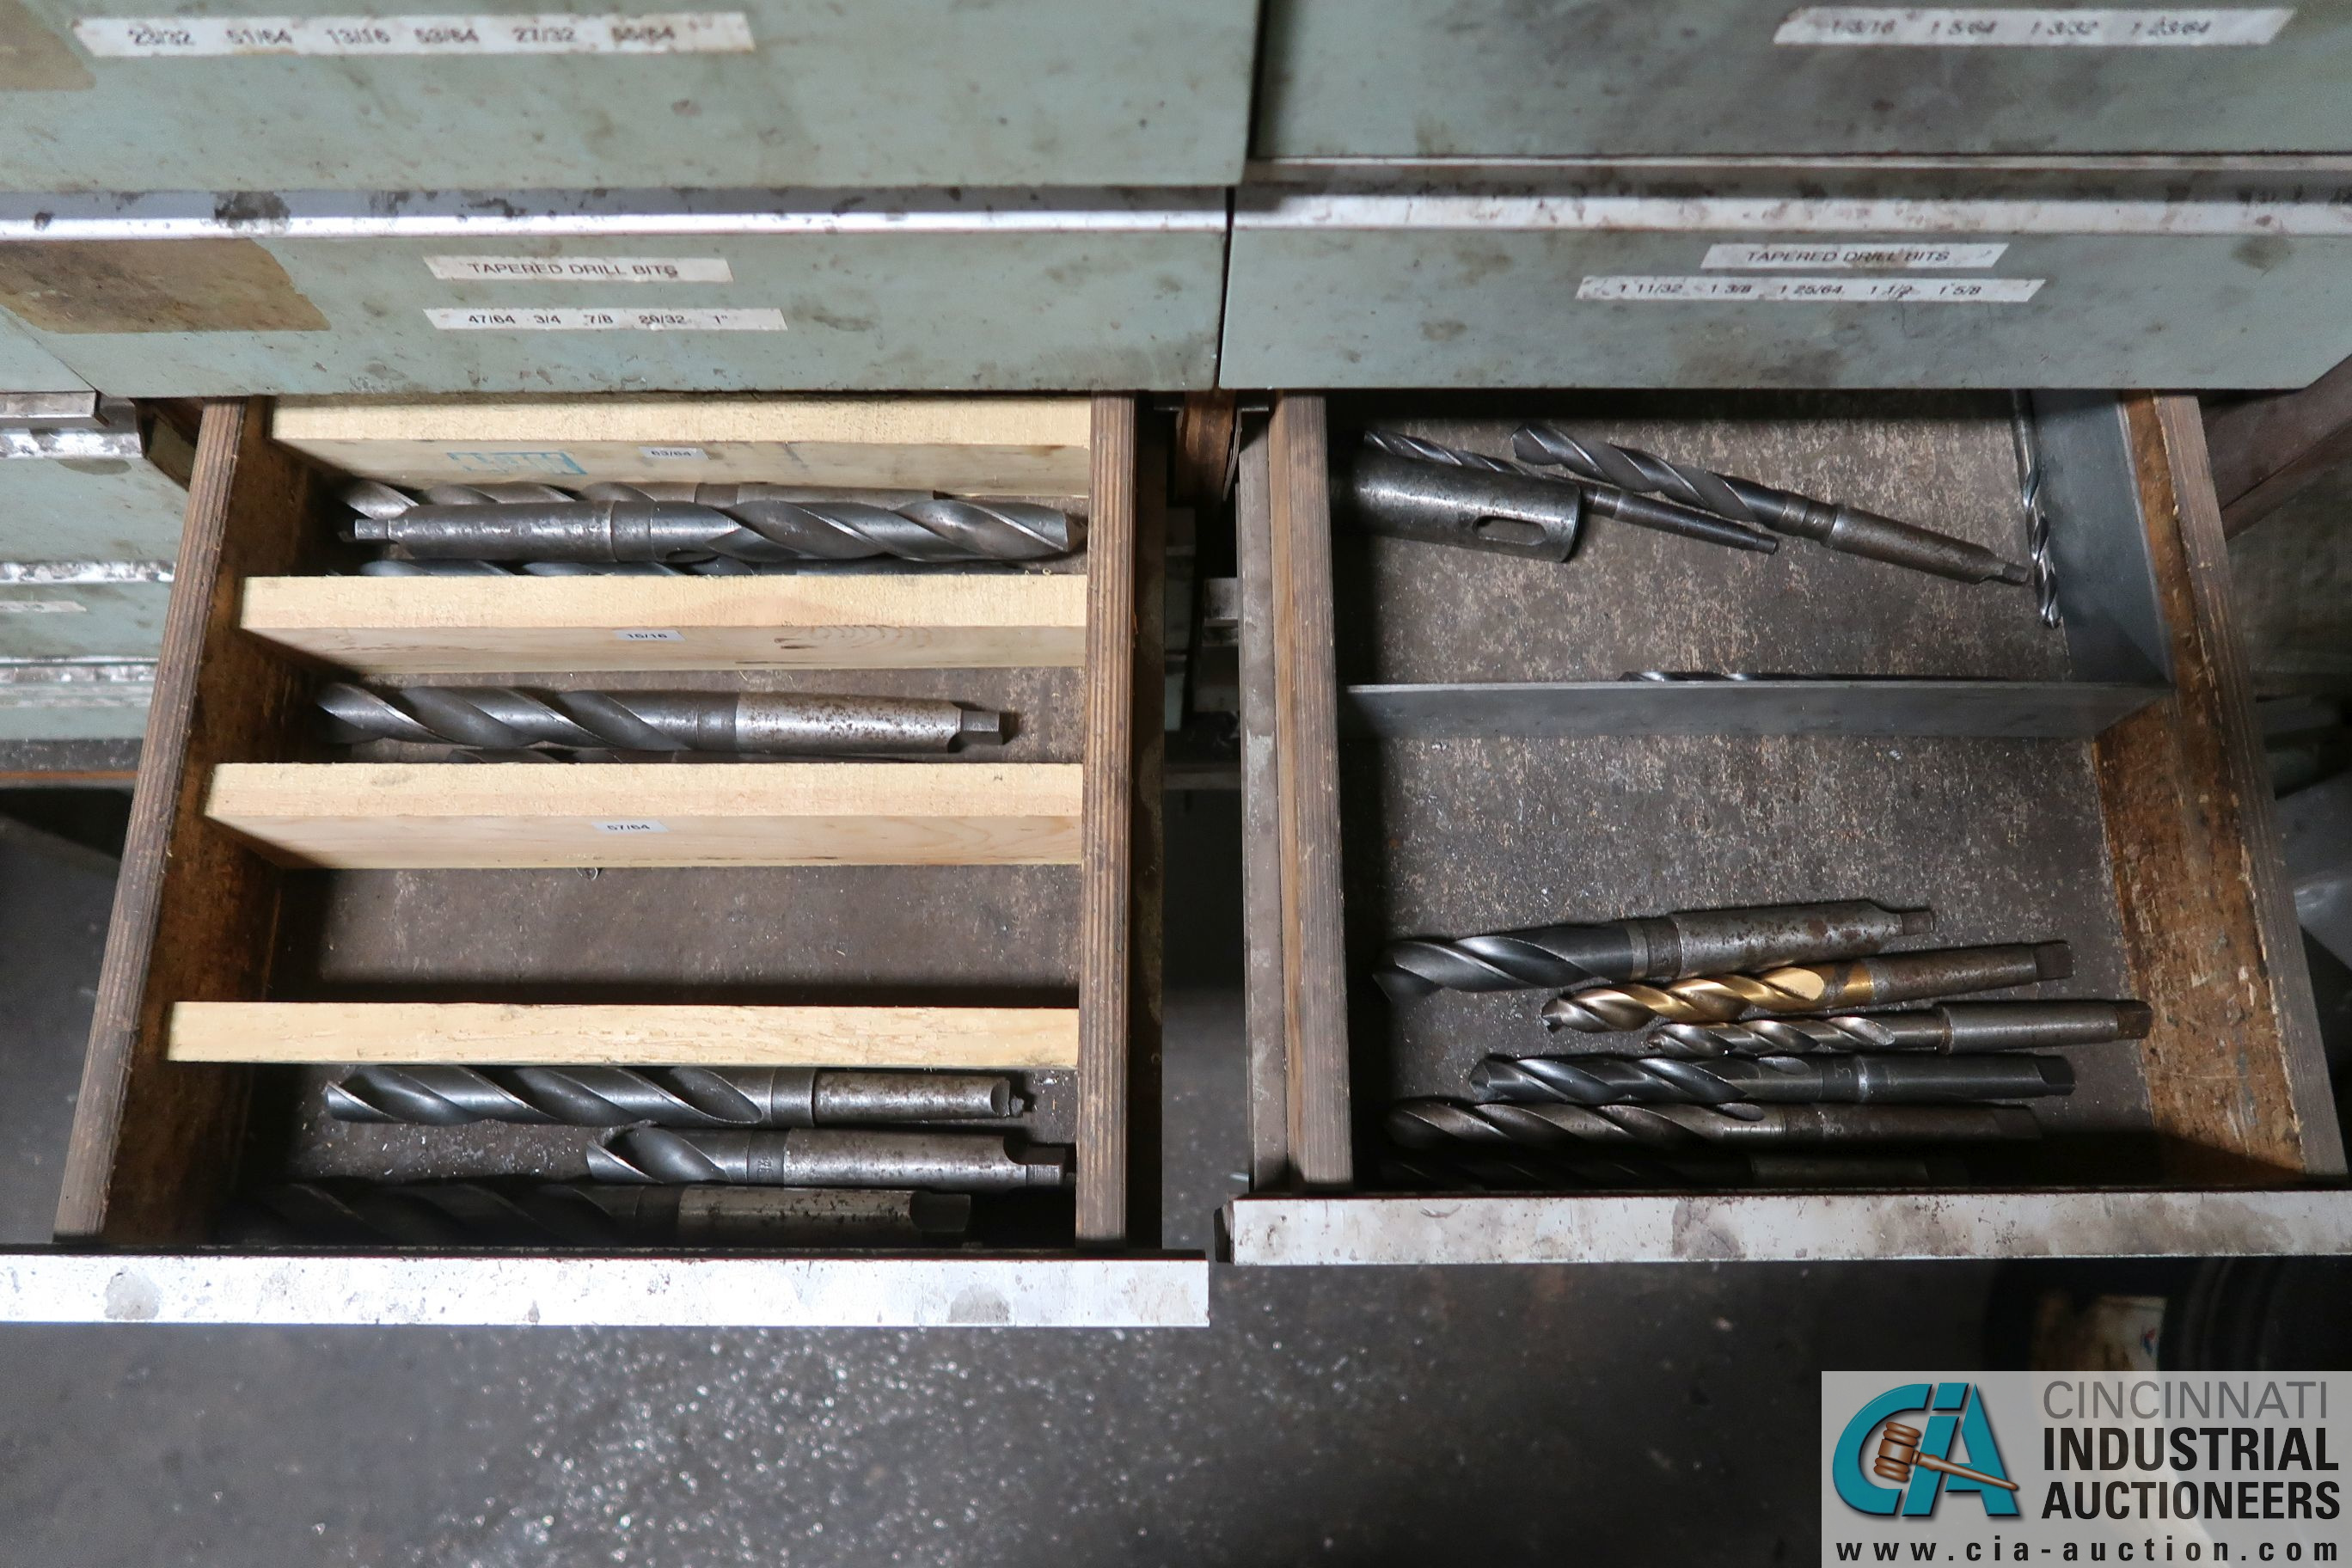 CABINETS WITH MISC. TOOLING, PARTS, HOLD DOWNS - Image 10 of 15